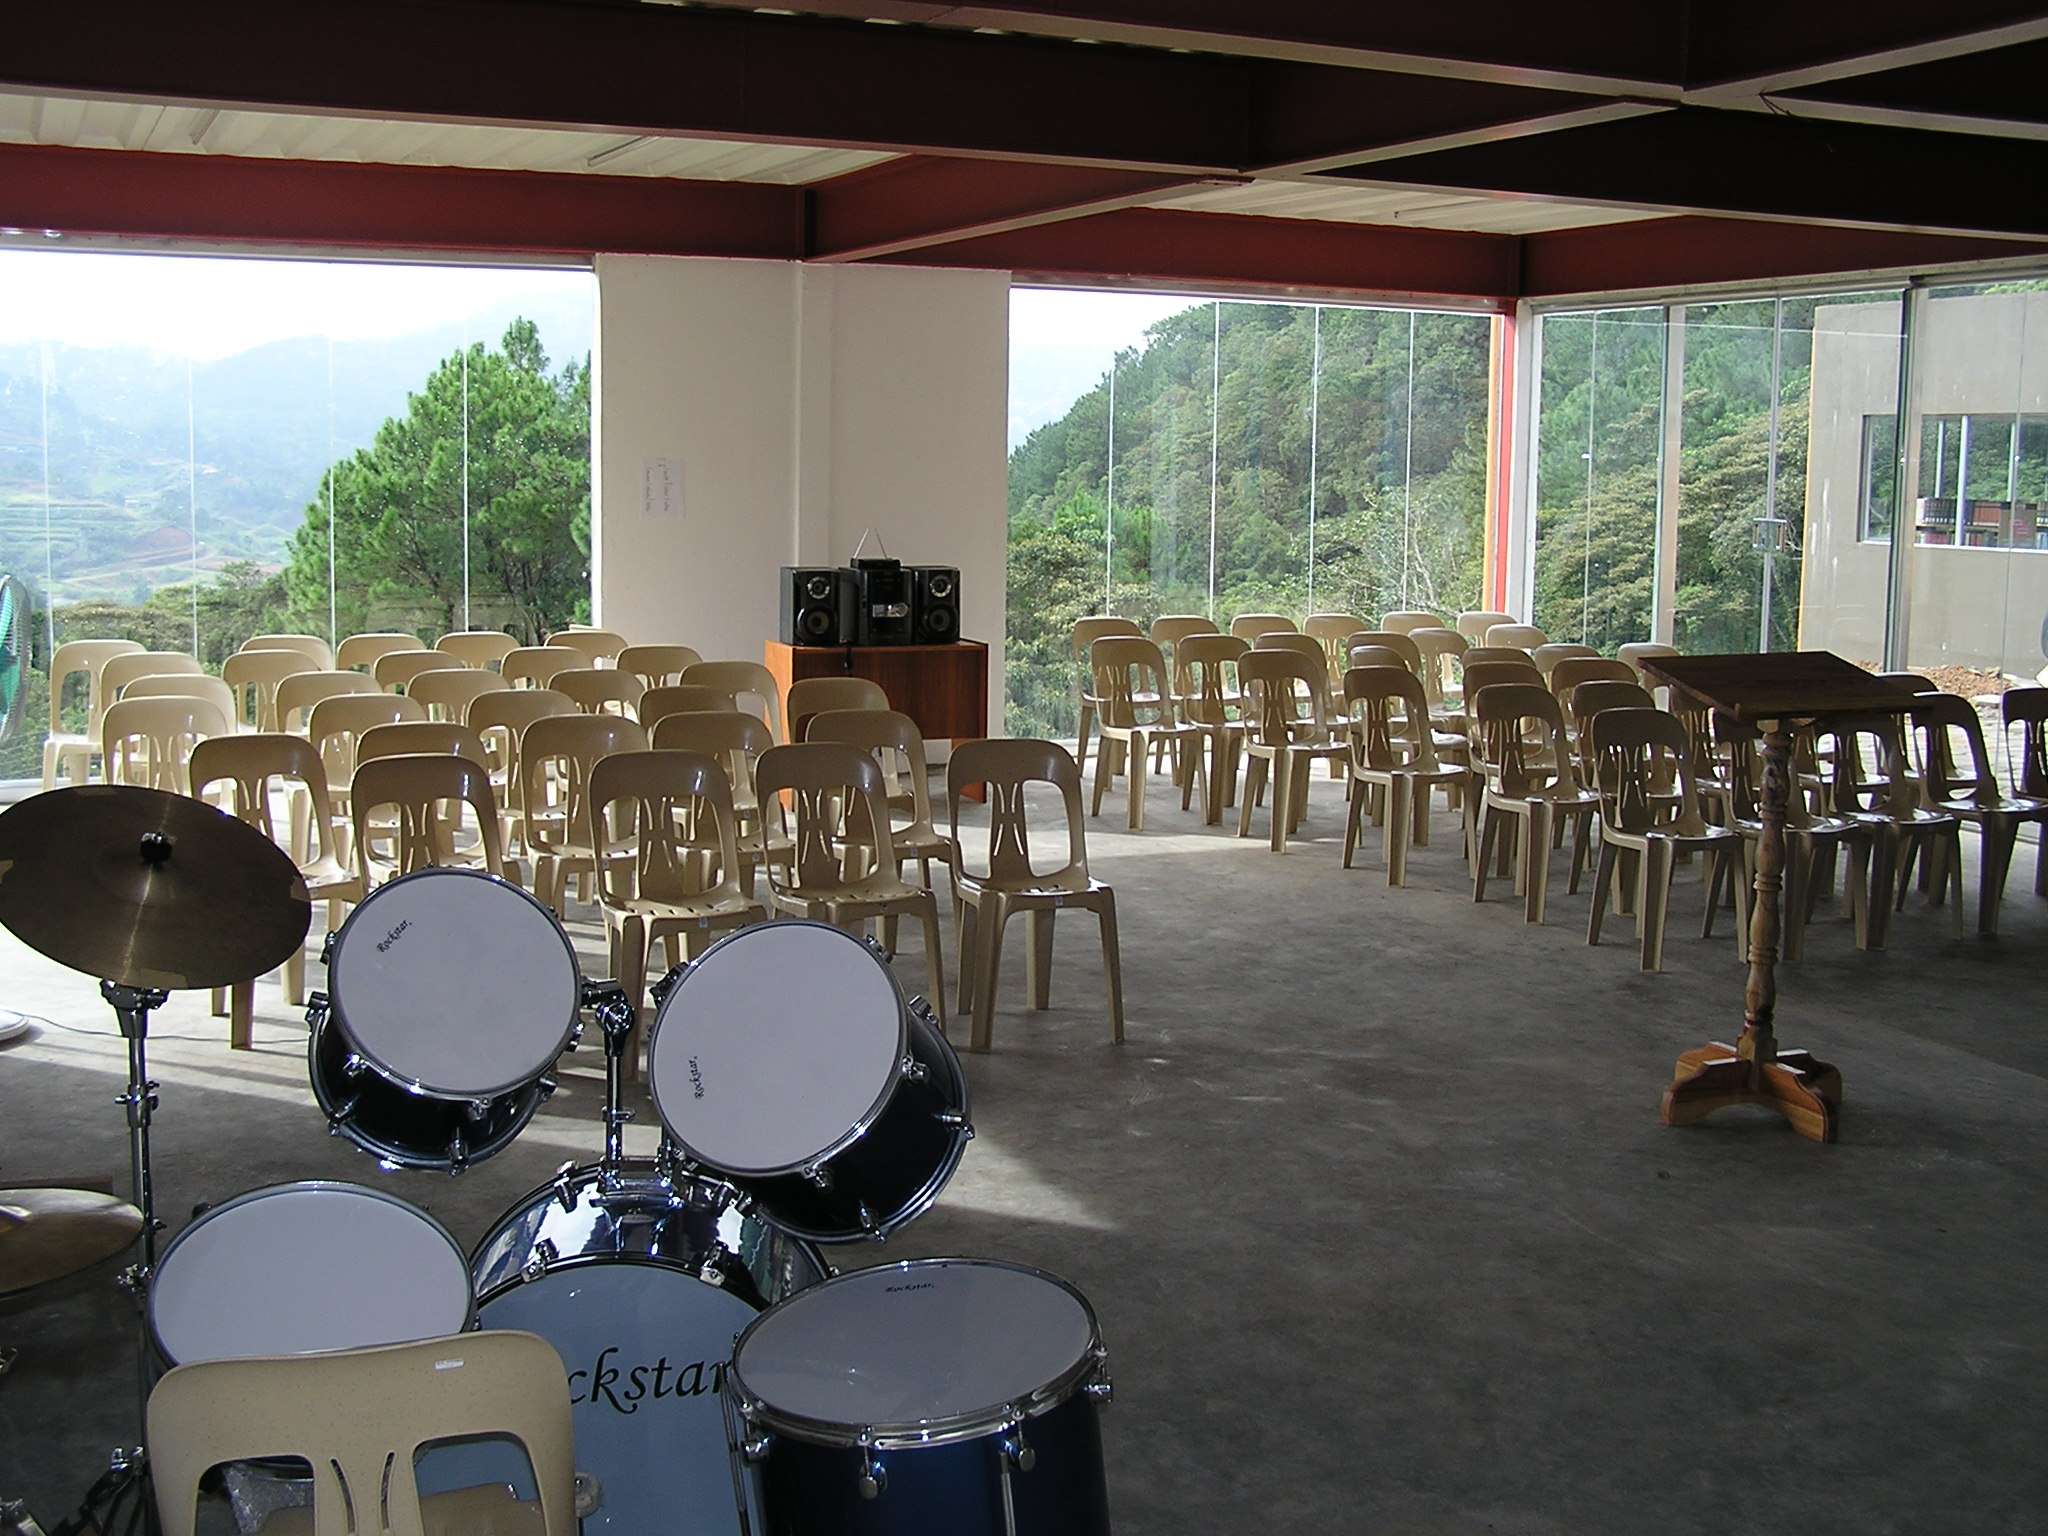 PCM Chapel.jpg English: Philippine College of Ministry, Baguio City, Philippines. The chapel can accommodate up to 100 seated. Date 22 September